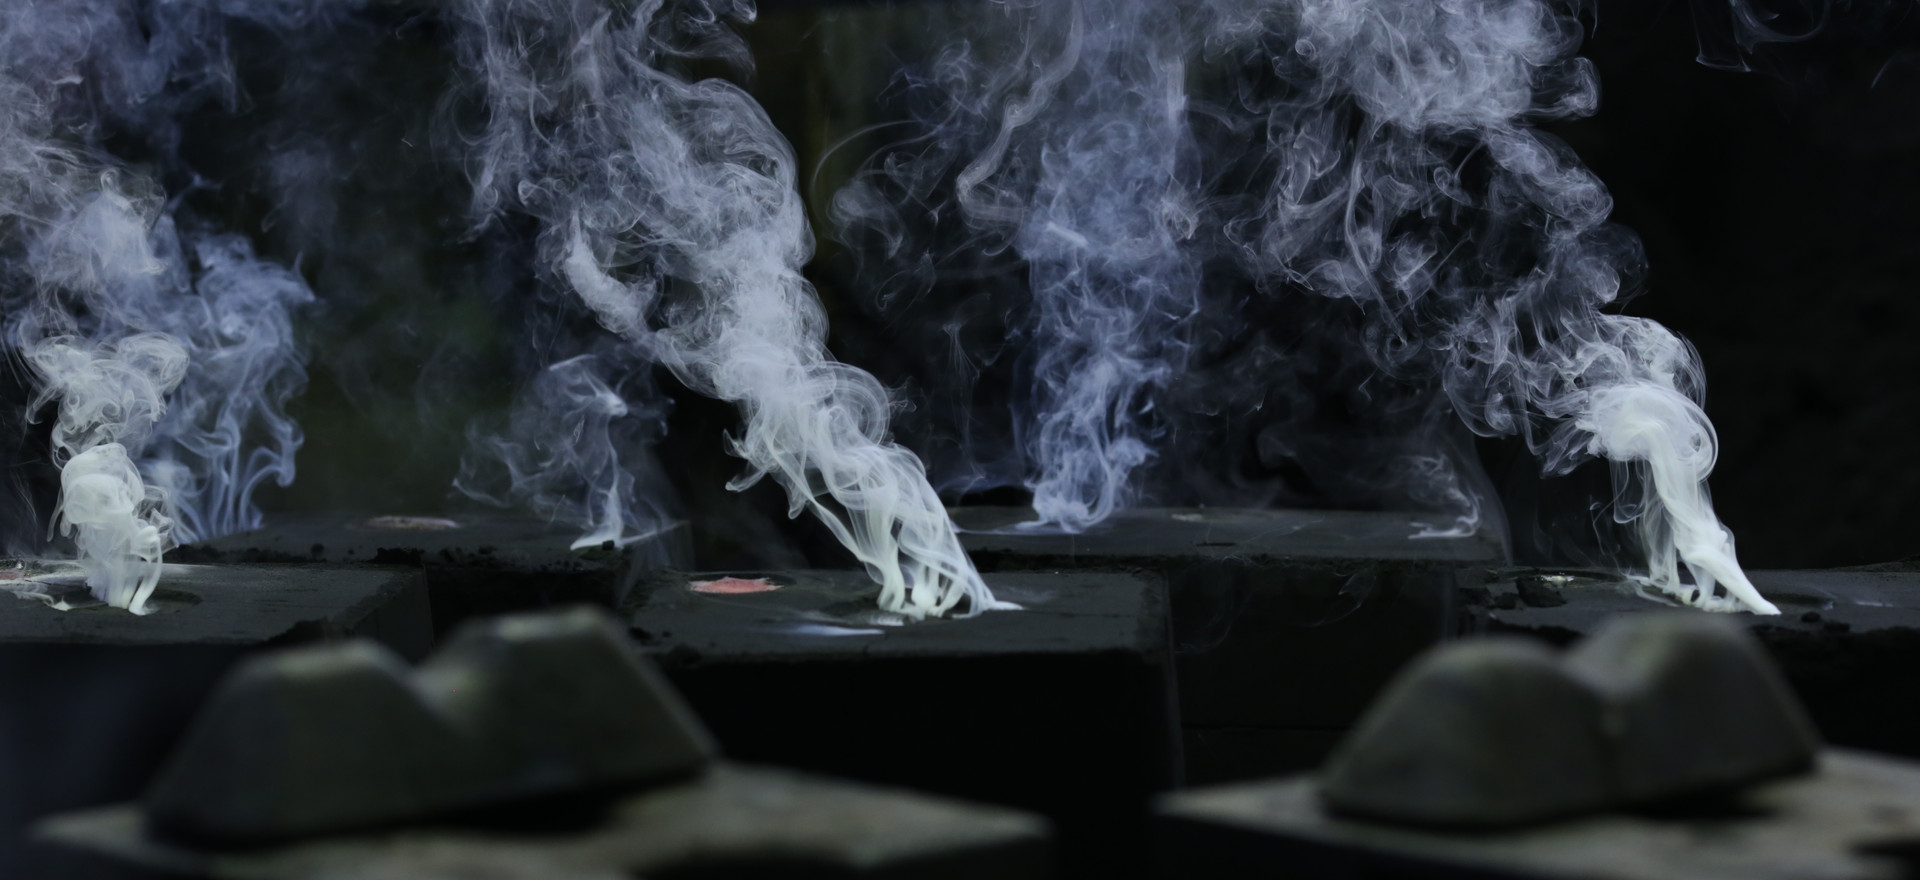 Smoke out of the mould